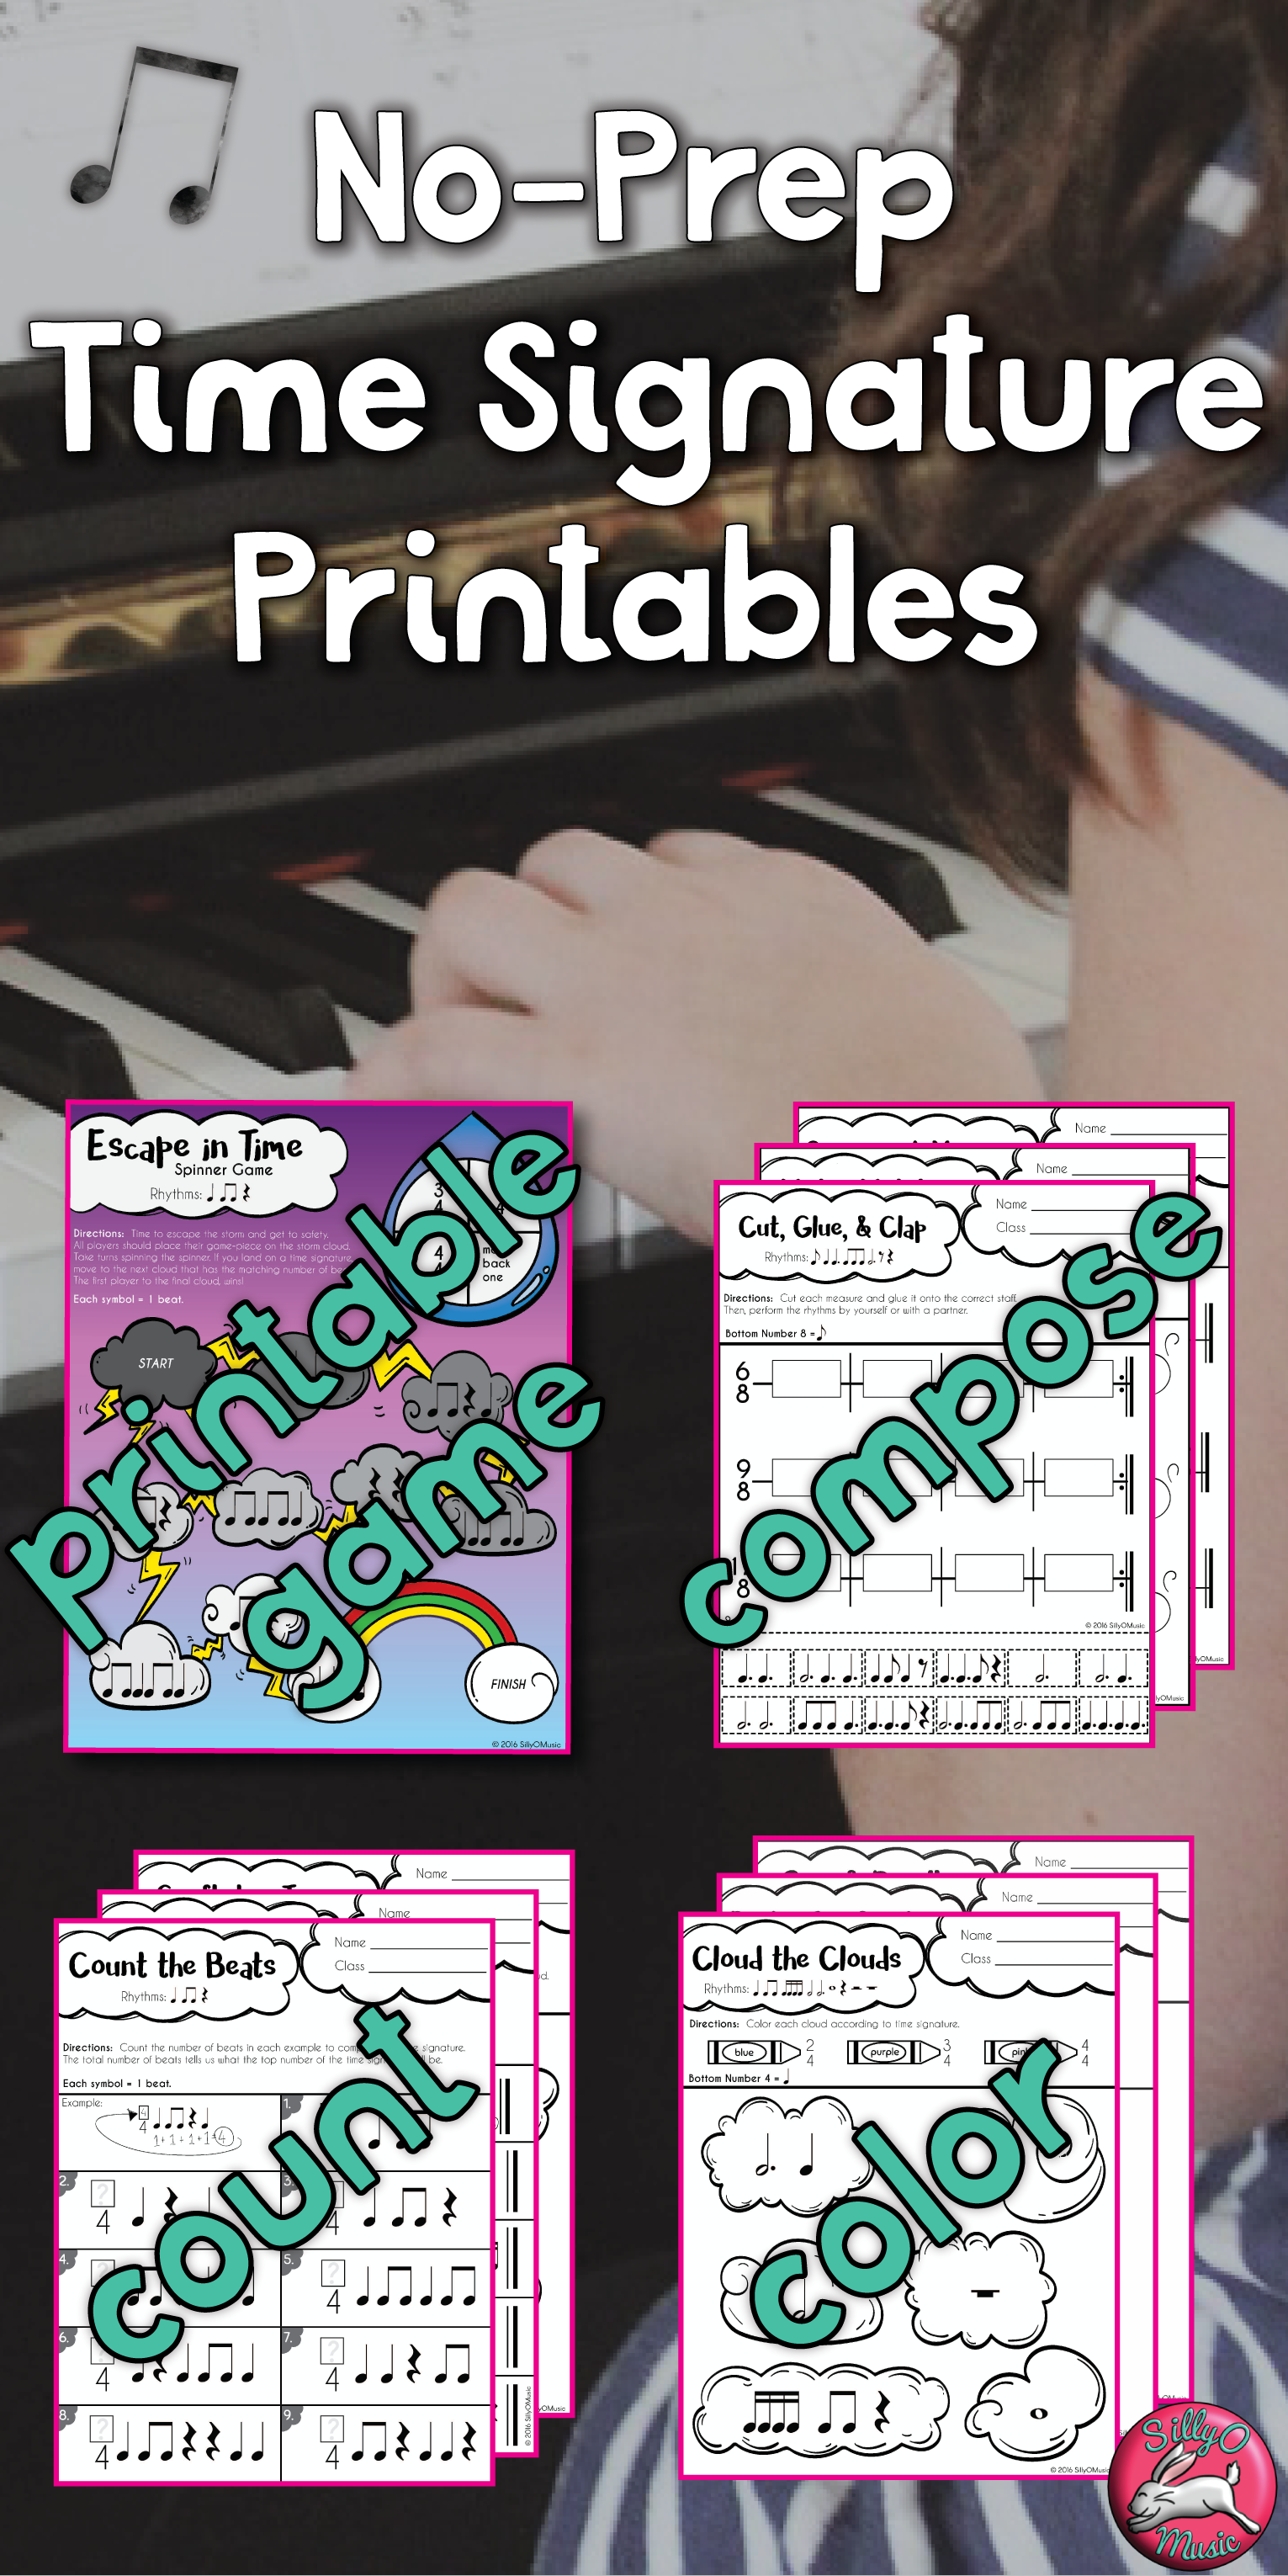 60 Time Signature Worksheets Different Levels Plus